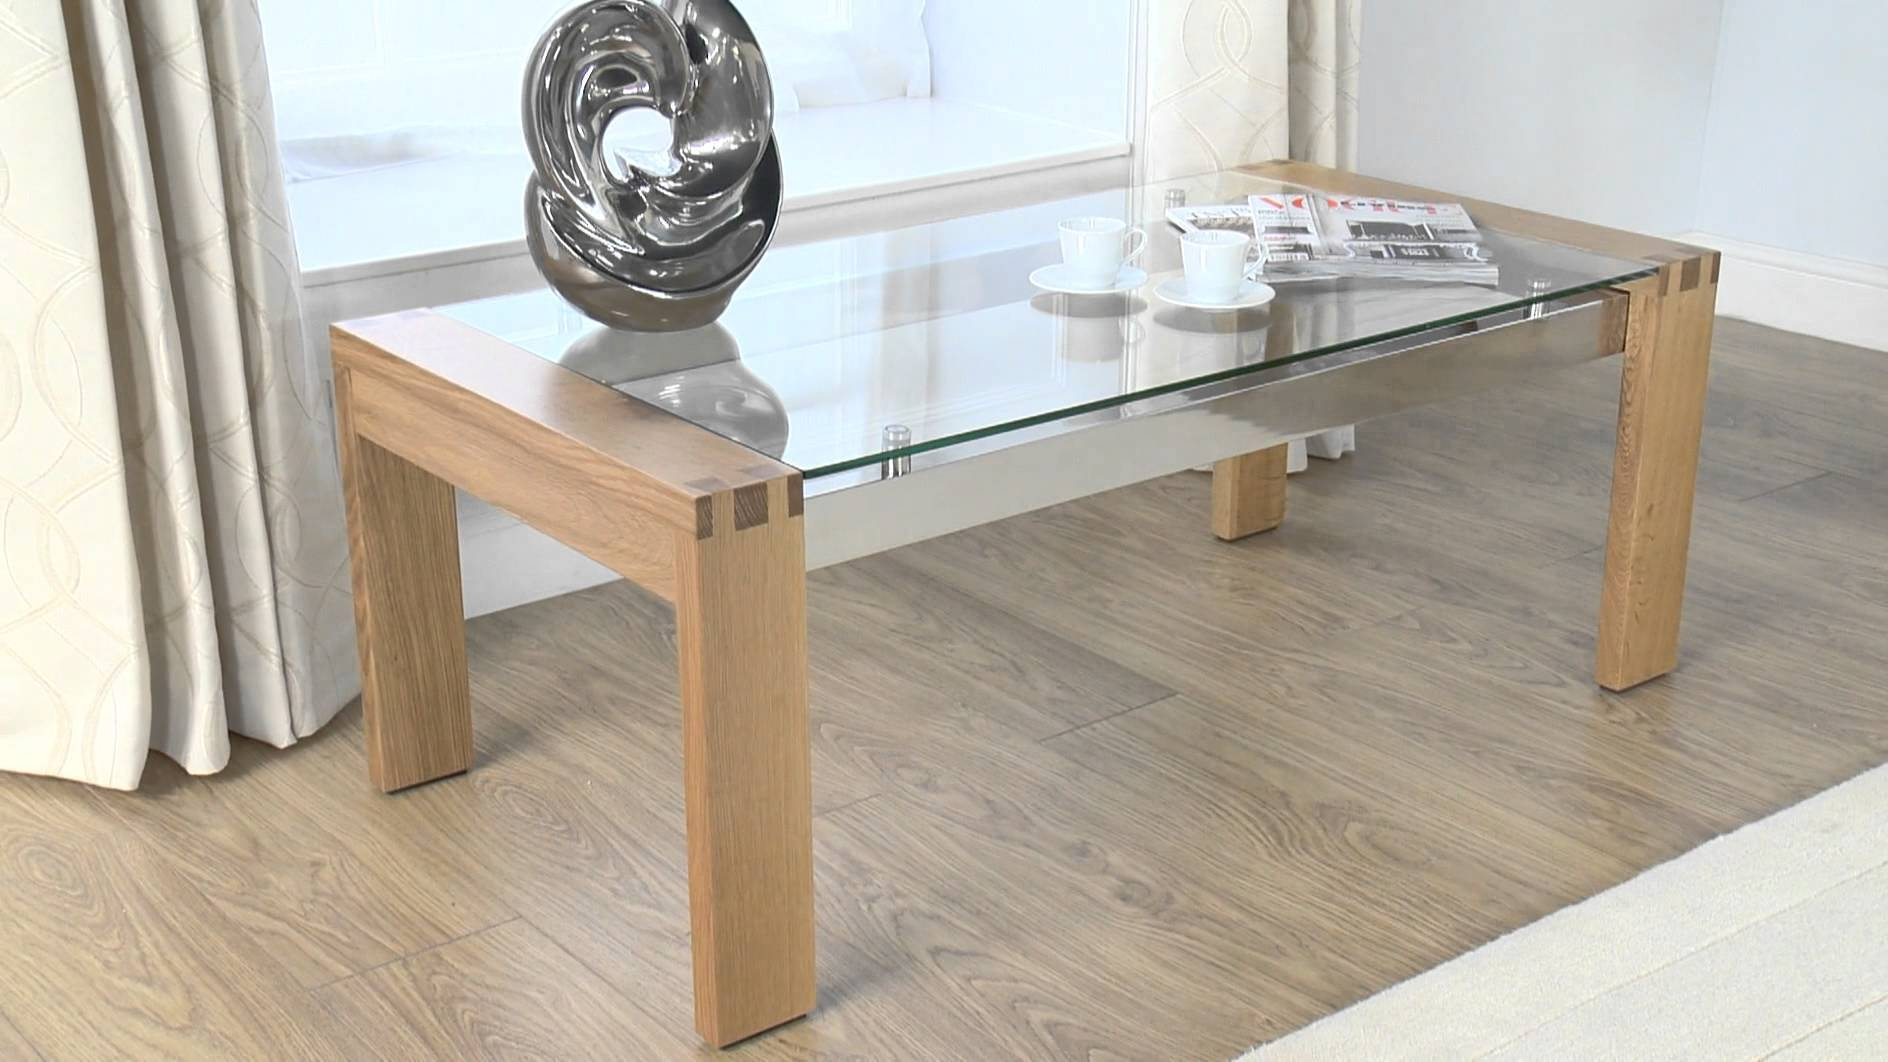 Solid Oak Coffee Table With Glass Top | Coffee Tables Decoration within Dark Wood Coffee Tables With Glass Top (Image 28 of 30)